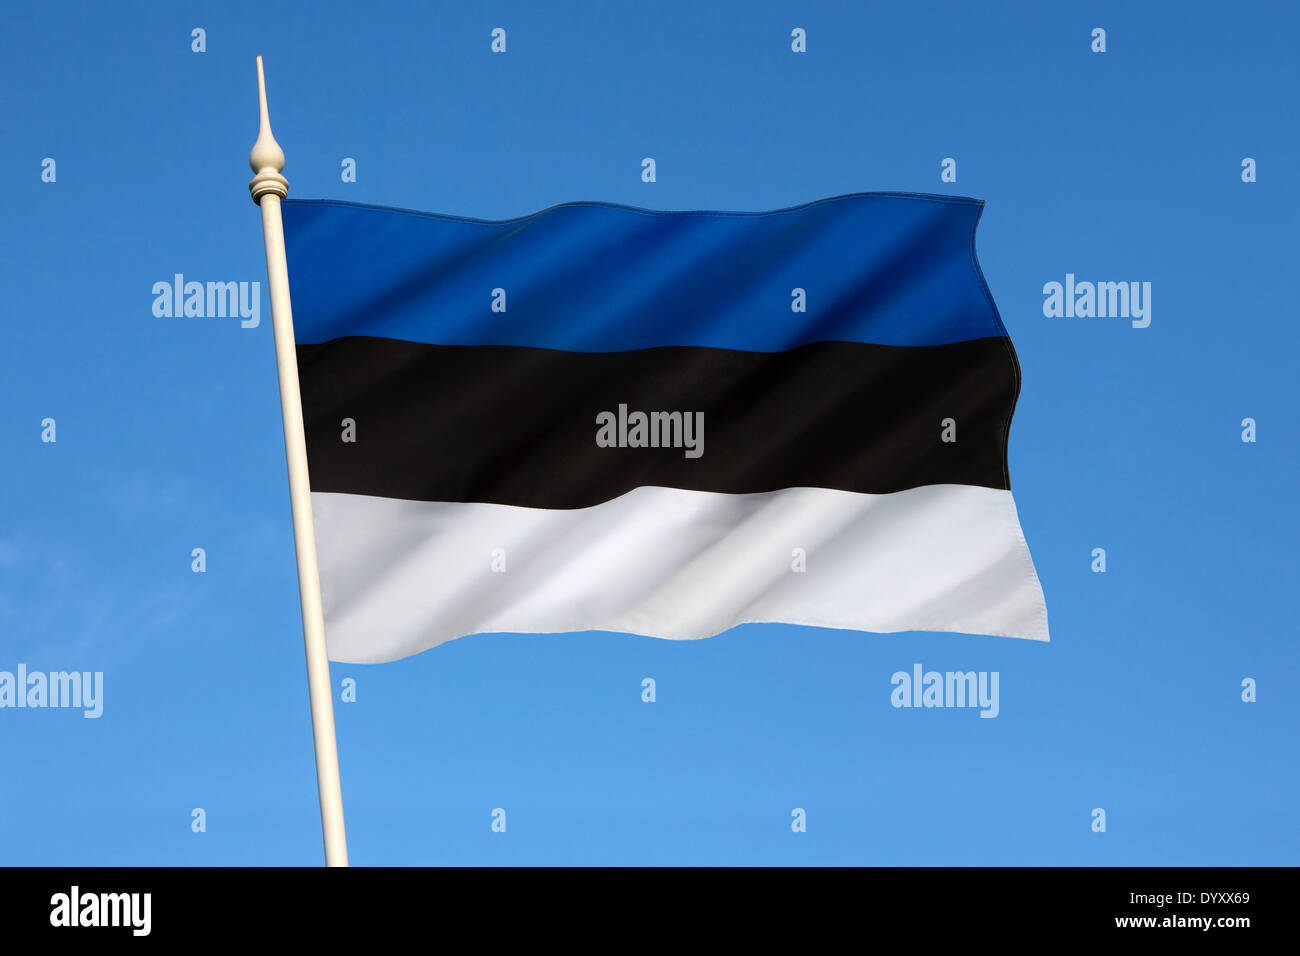 The national flag of Estonia. - Stock Image